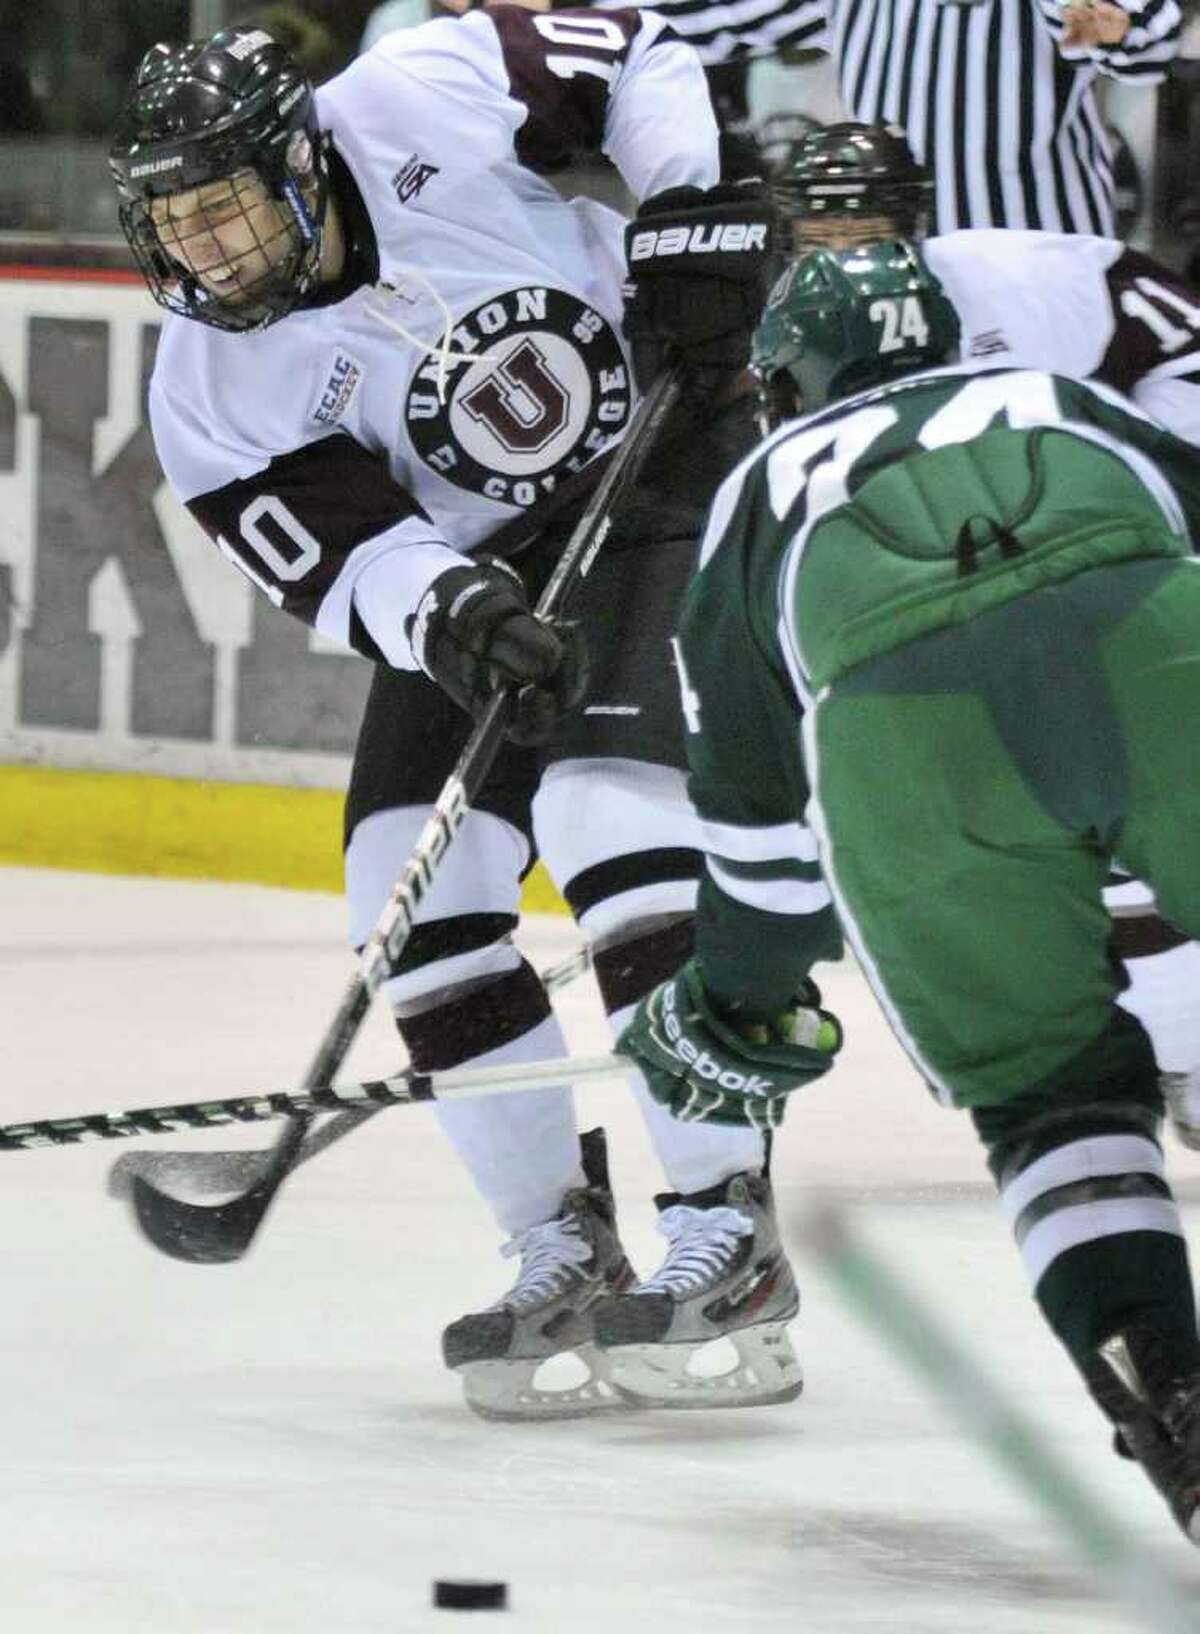 Union's #11 Mark Bennett, left, shoots past Dartmouth's #24Andy Simpson during their game at Union College's Messa Rink in Schenectady Saturday Jan. 7, 2012. (John Carl D'Annibale / Times Union)